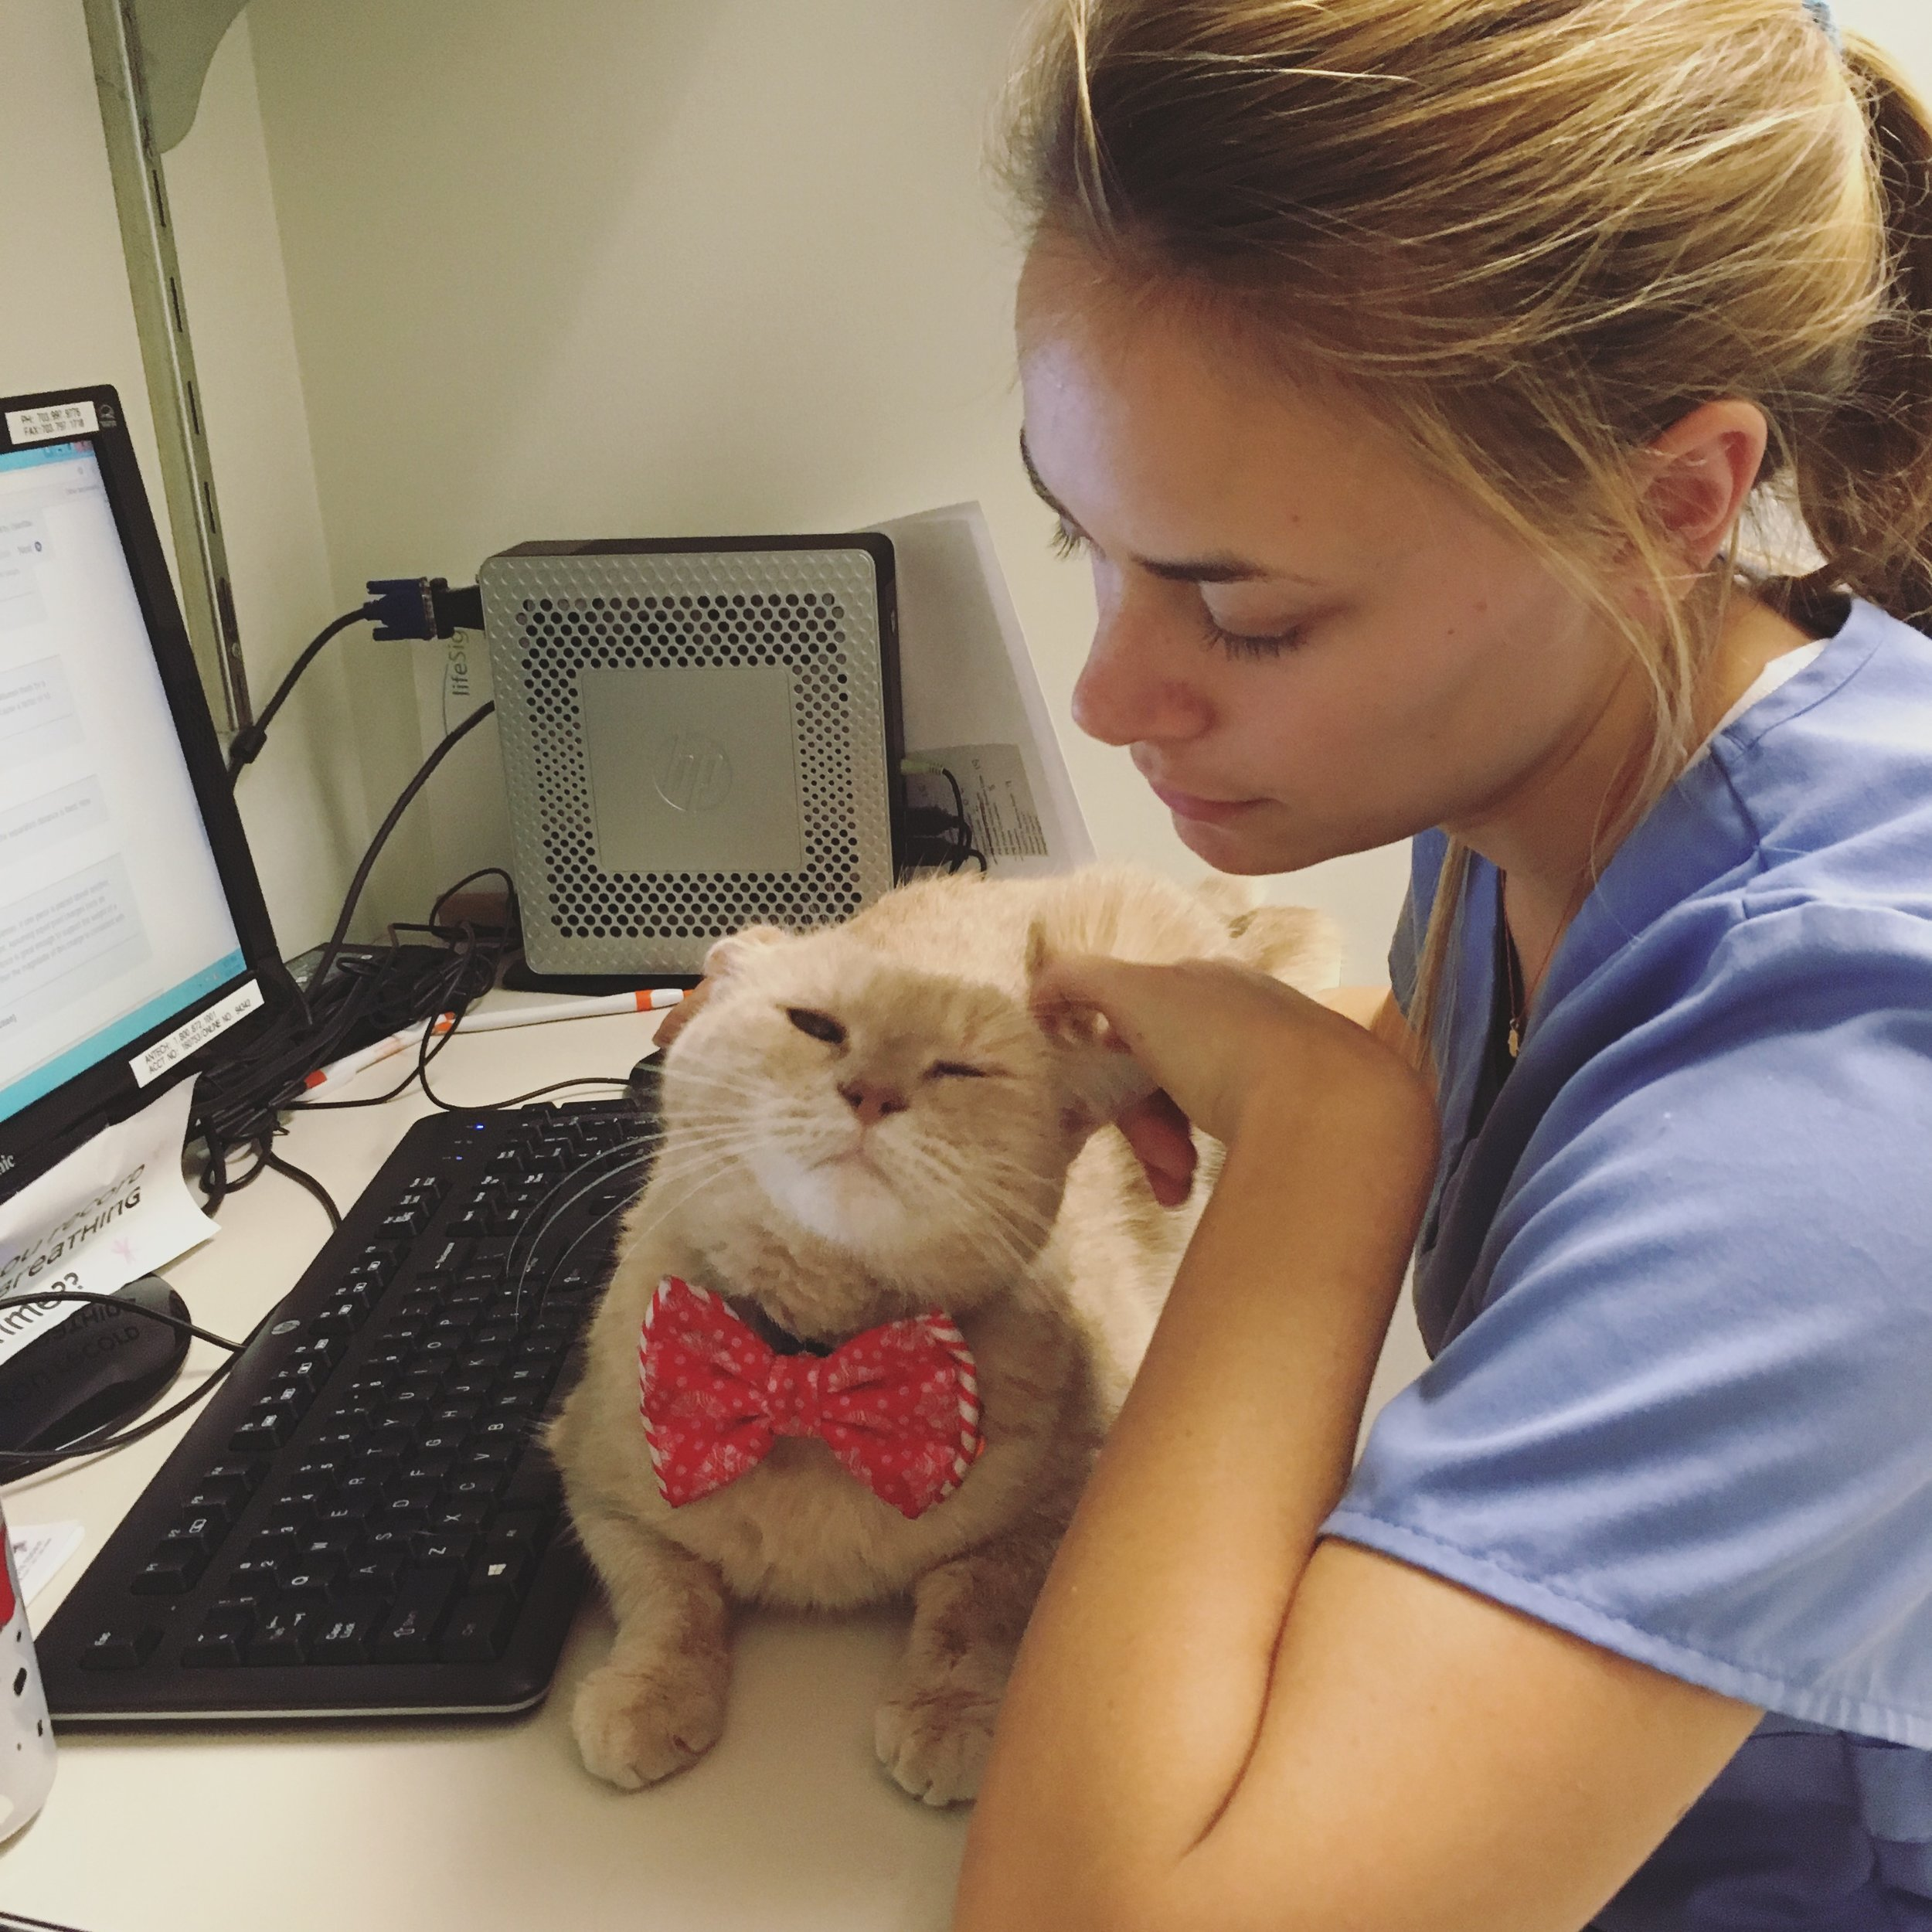 Clarendon Animal Care Veterinary Clinic Arlington Virginia Staff with the Clinic Cat Tommy